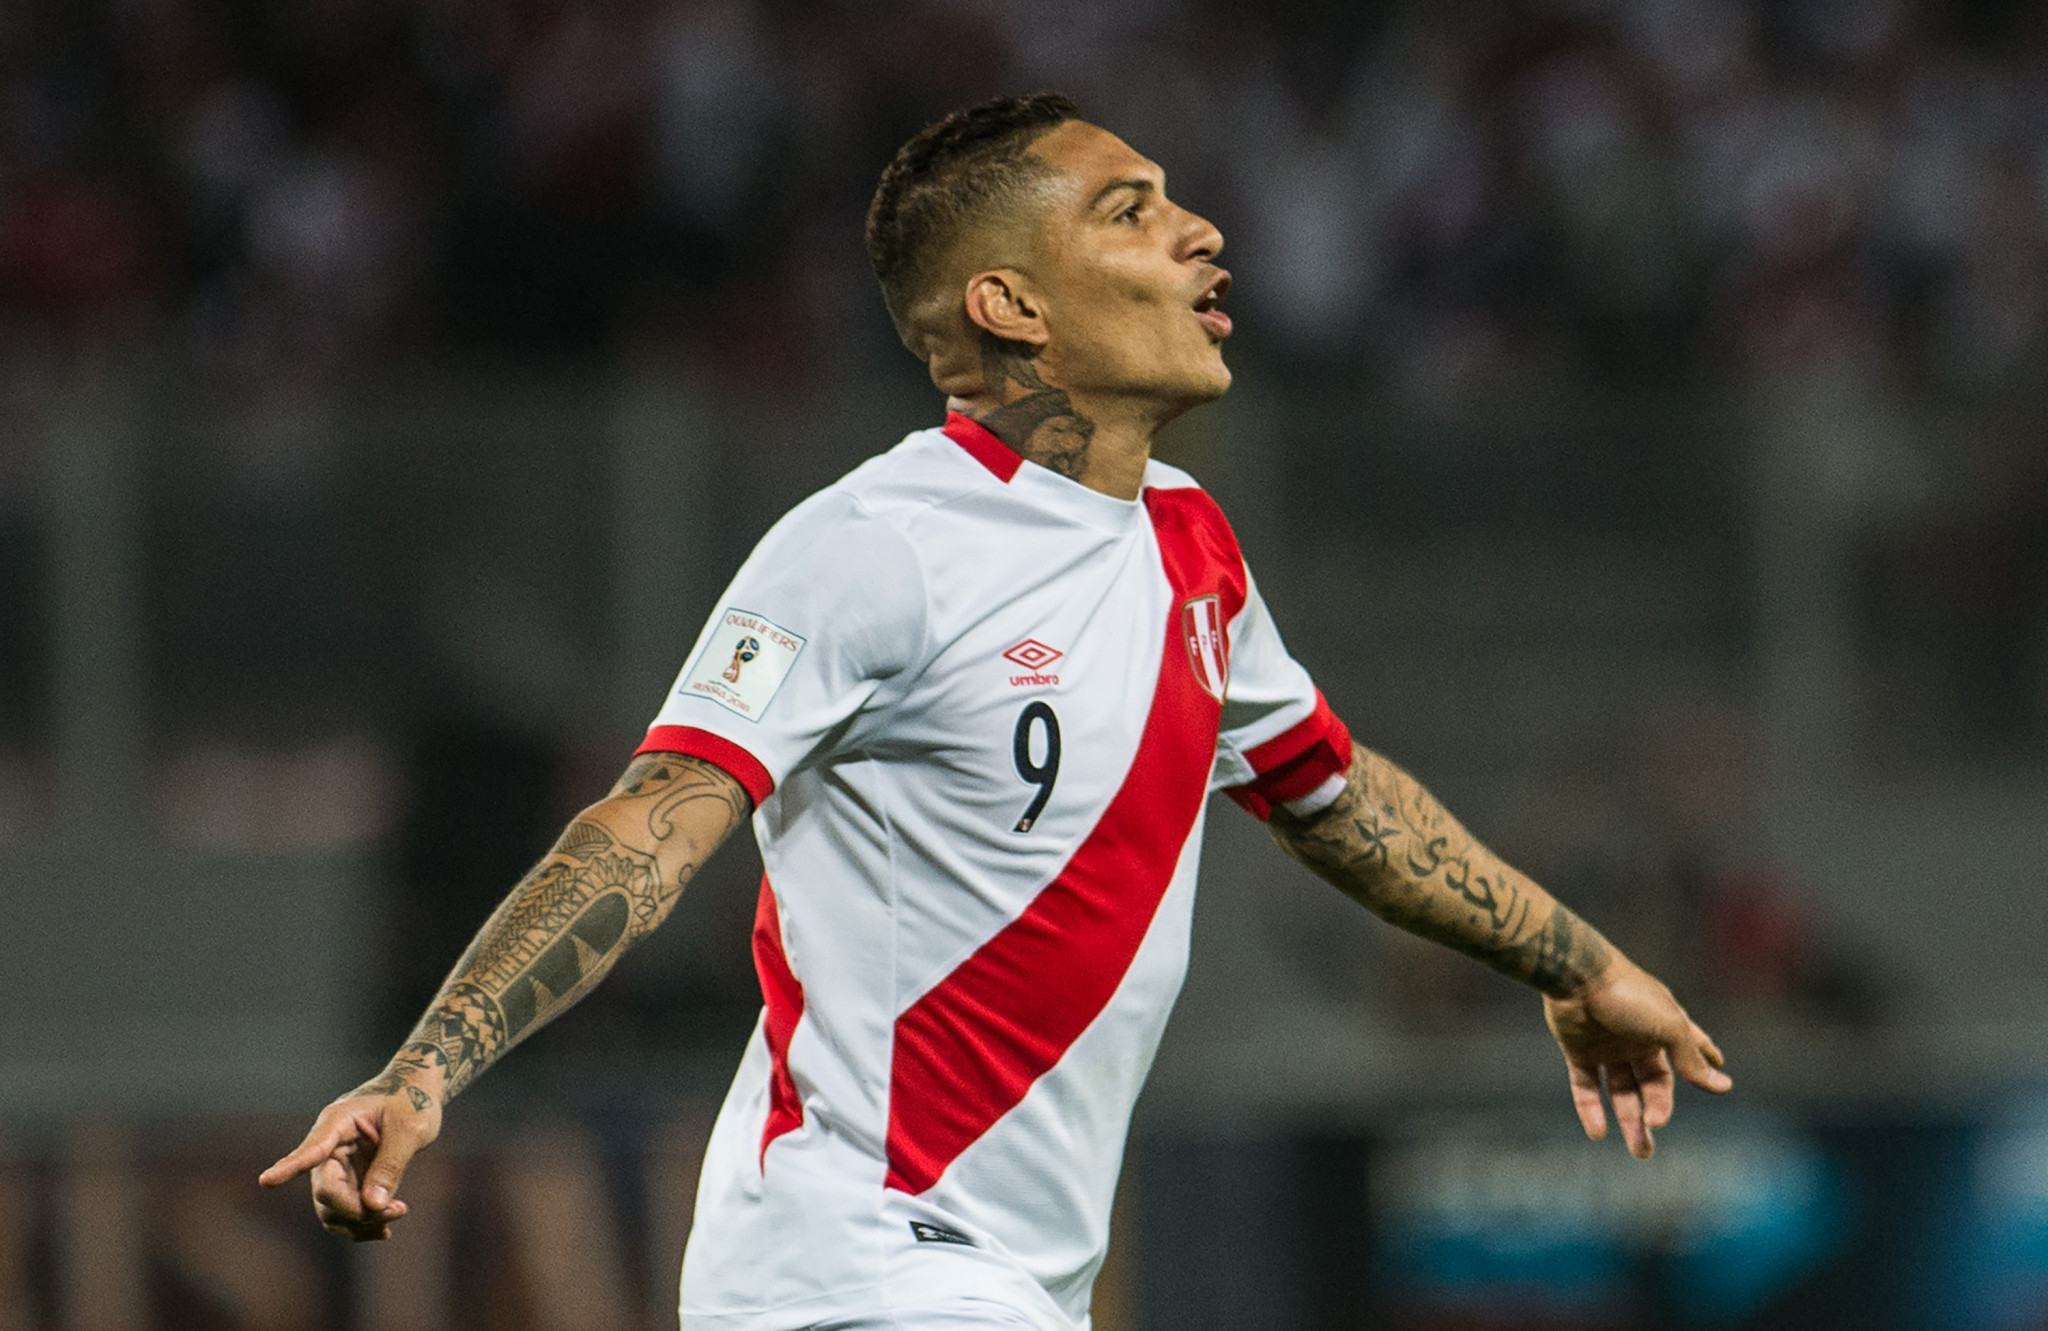 Peru captain Guerrero could play at FIFA World Cup following reduction of drugs ban